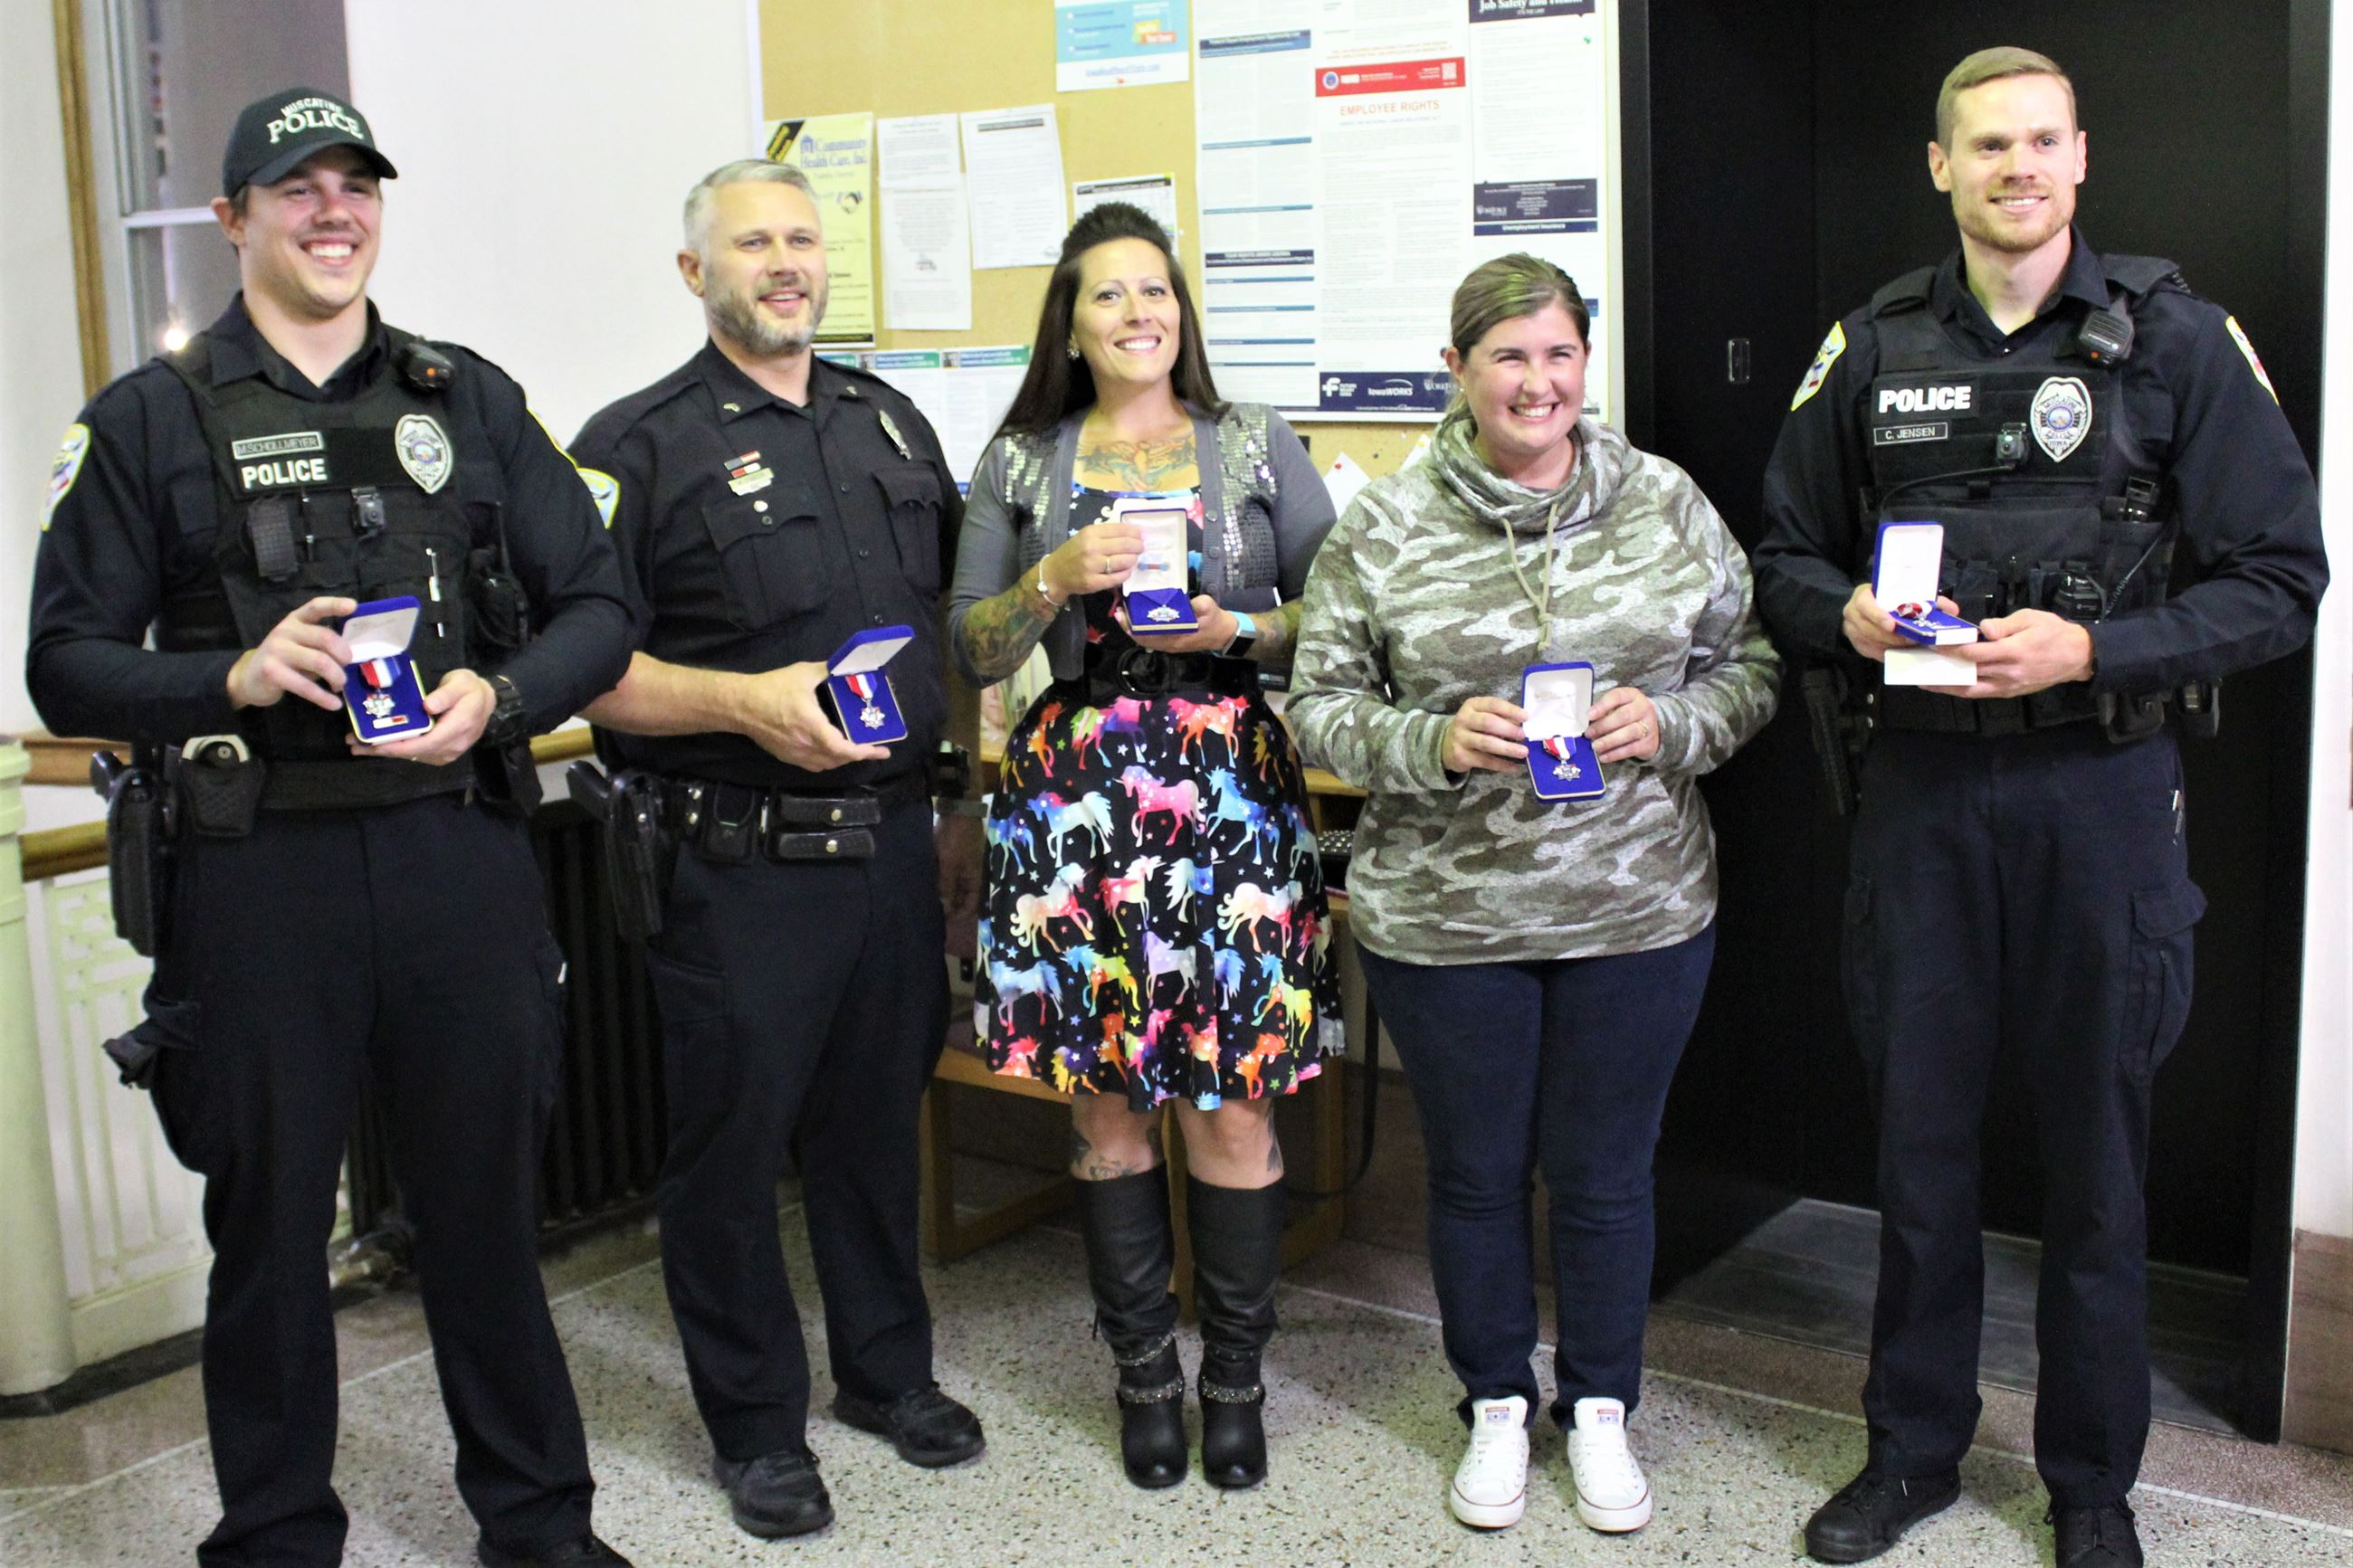 100120 MPD Awards to Schollmeyer, Fowler, Colman, Pena, and Jensen (JPG)